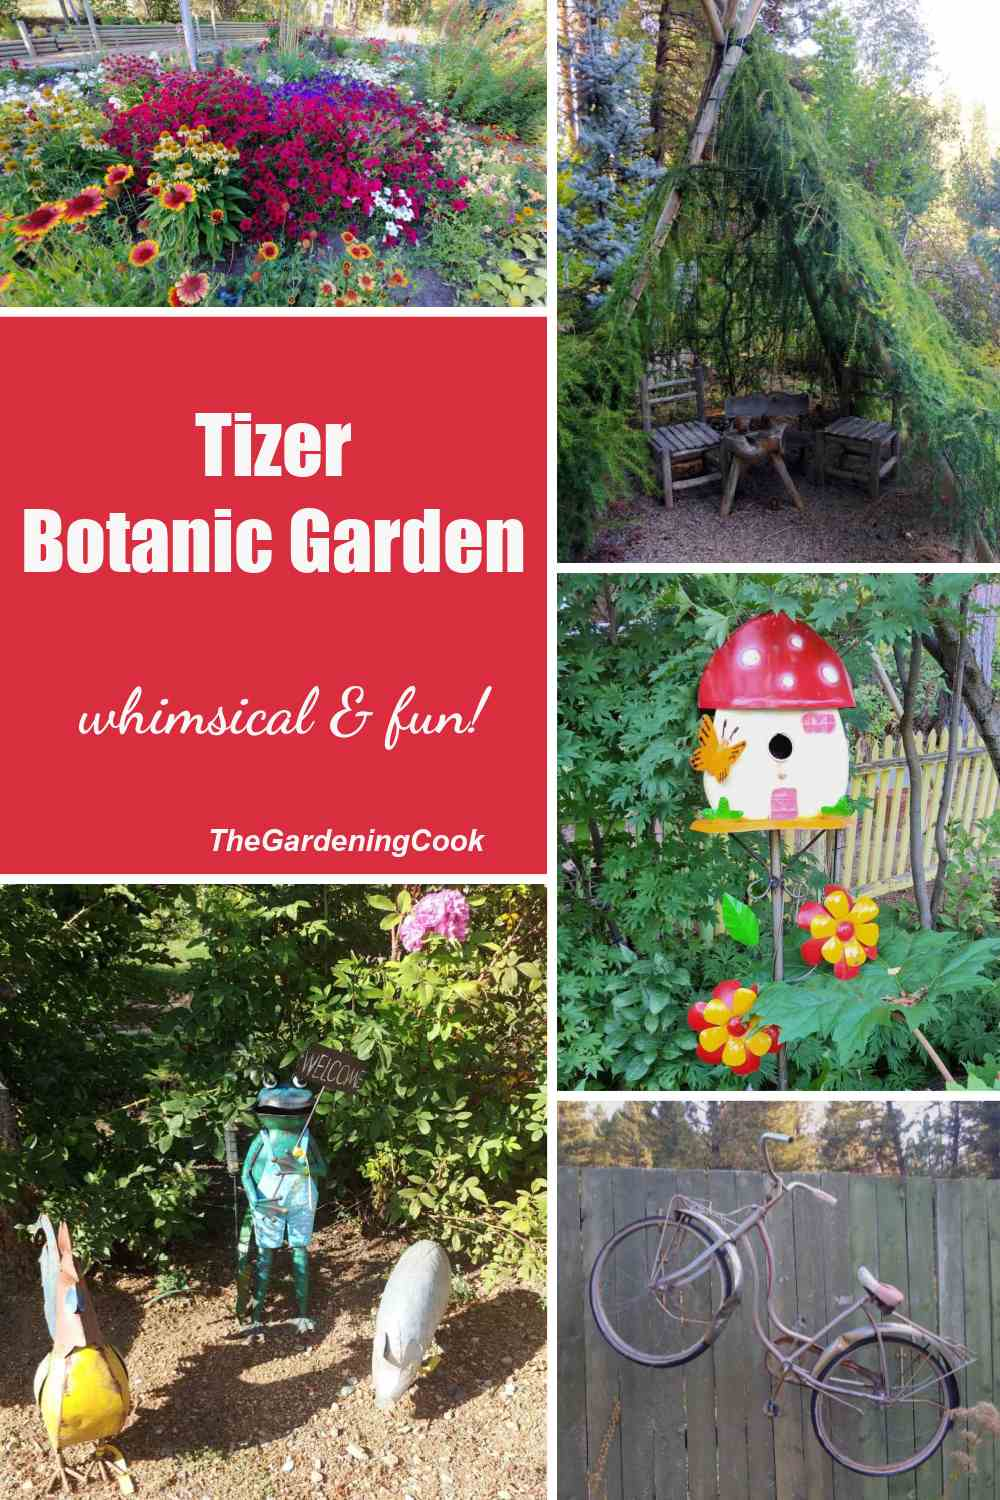 Whimsical garden scenes in a collage with wrds Tizer Botanic Garden - whimsical & fun!